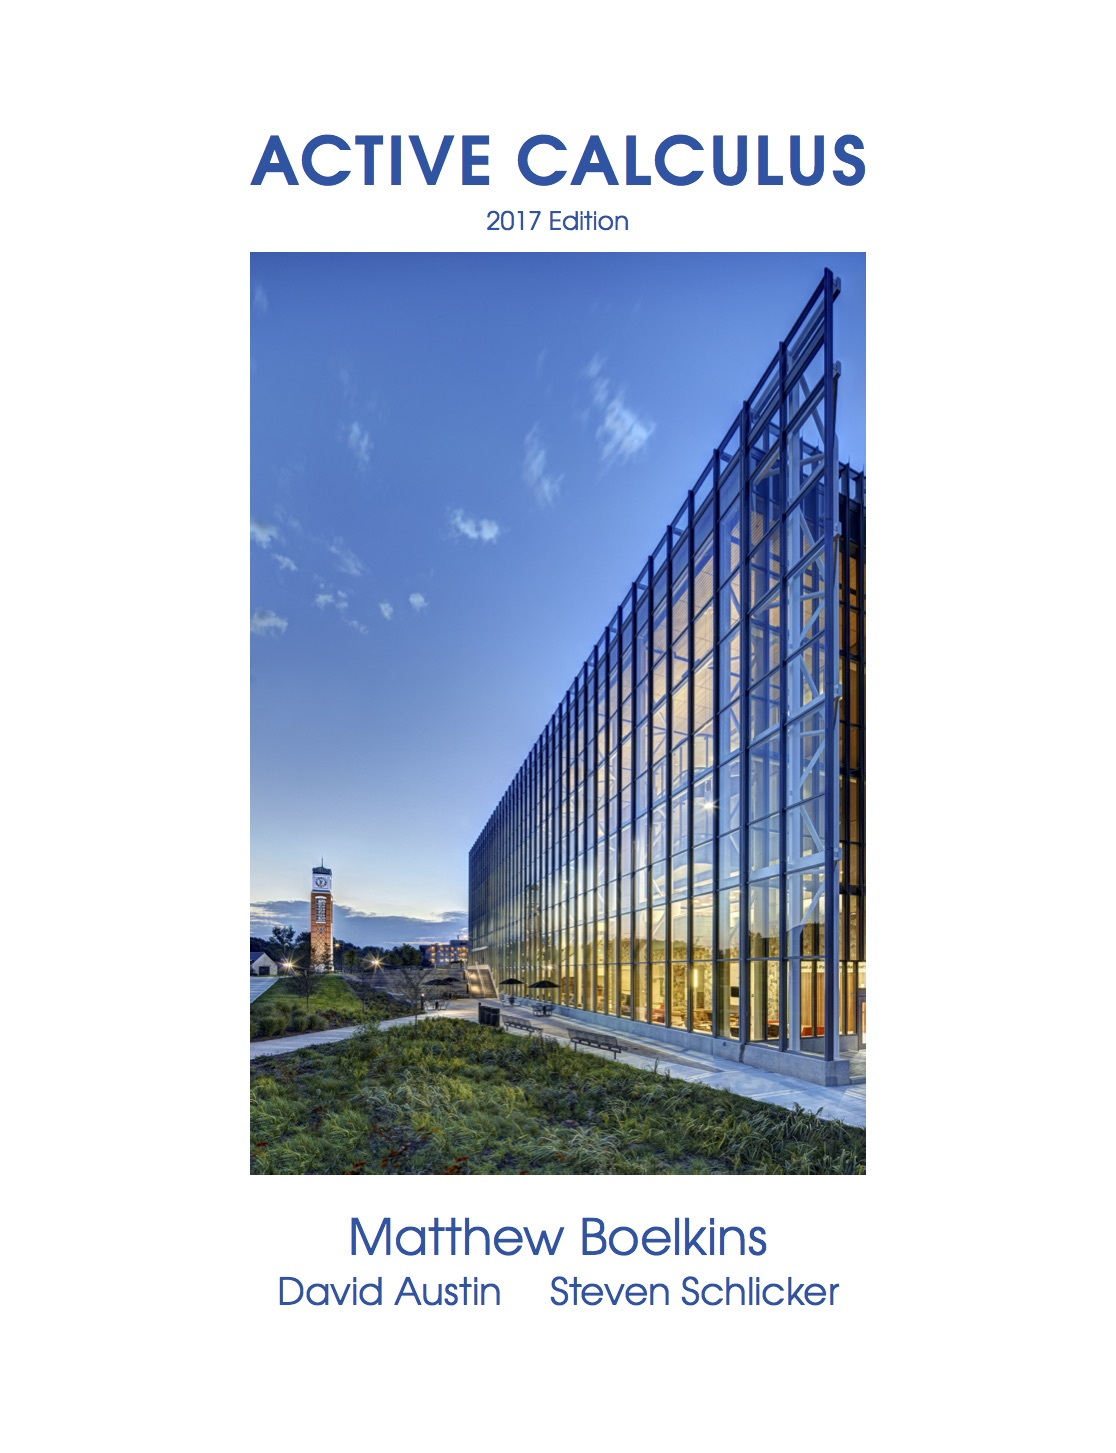 Active Calculus book cover showing a curved glass building